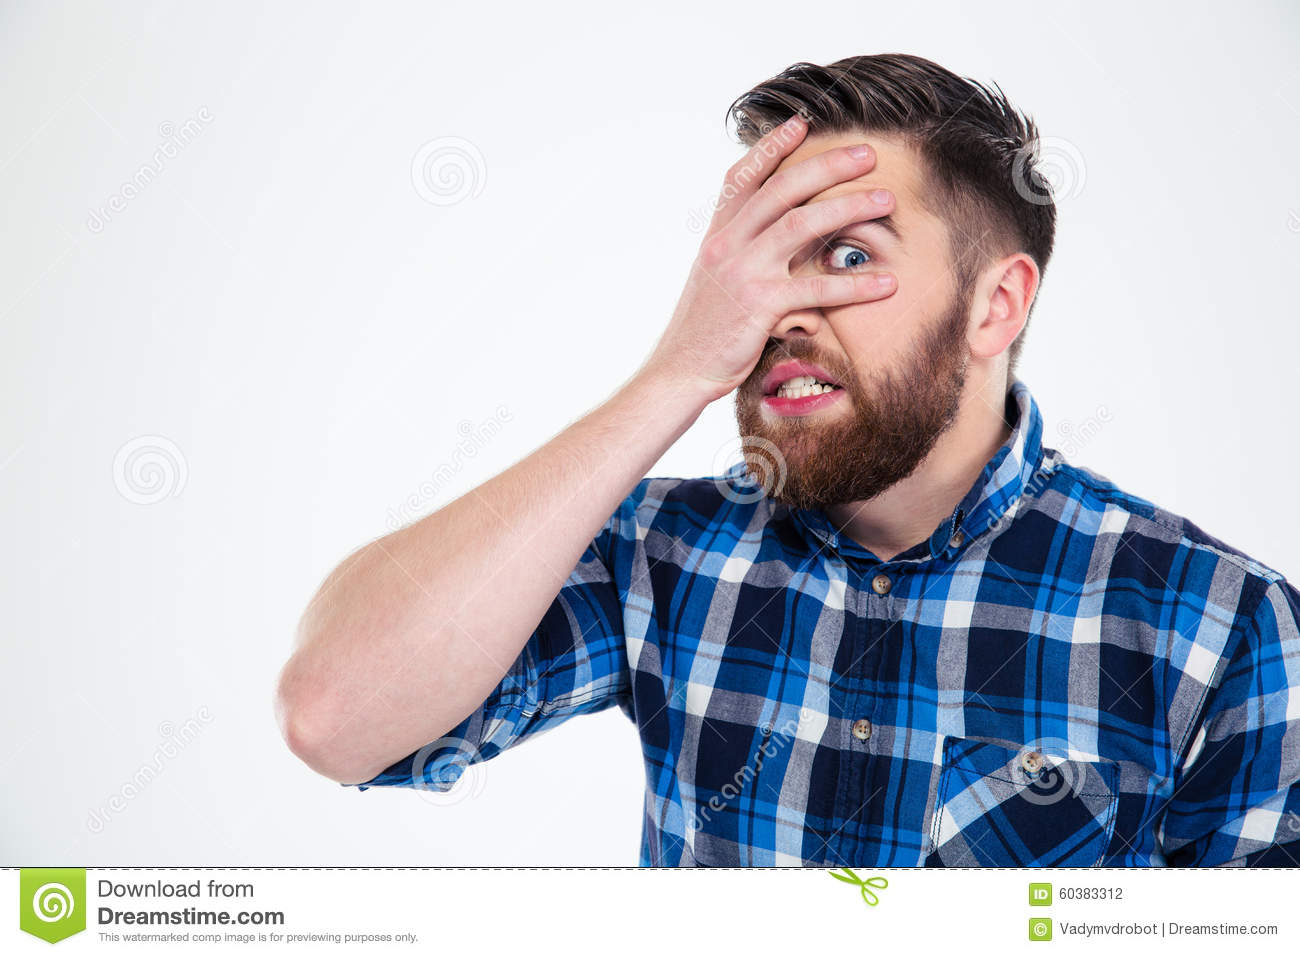 Man covering his face with palm and looking at camera through fingers